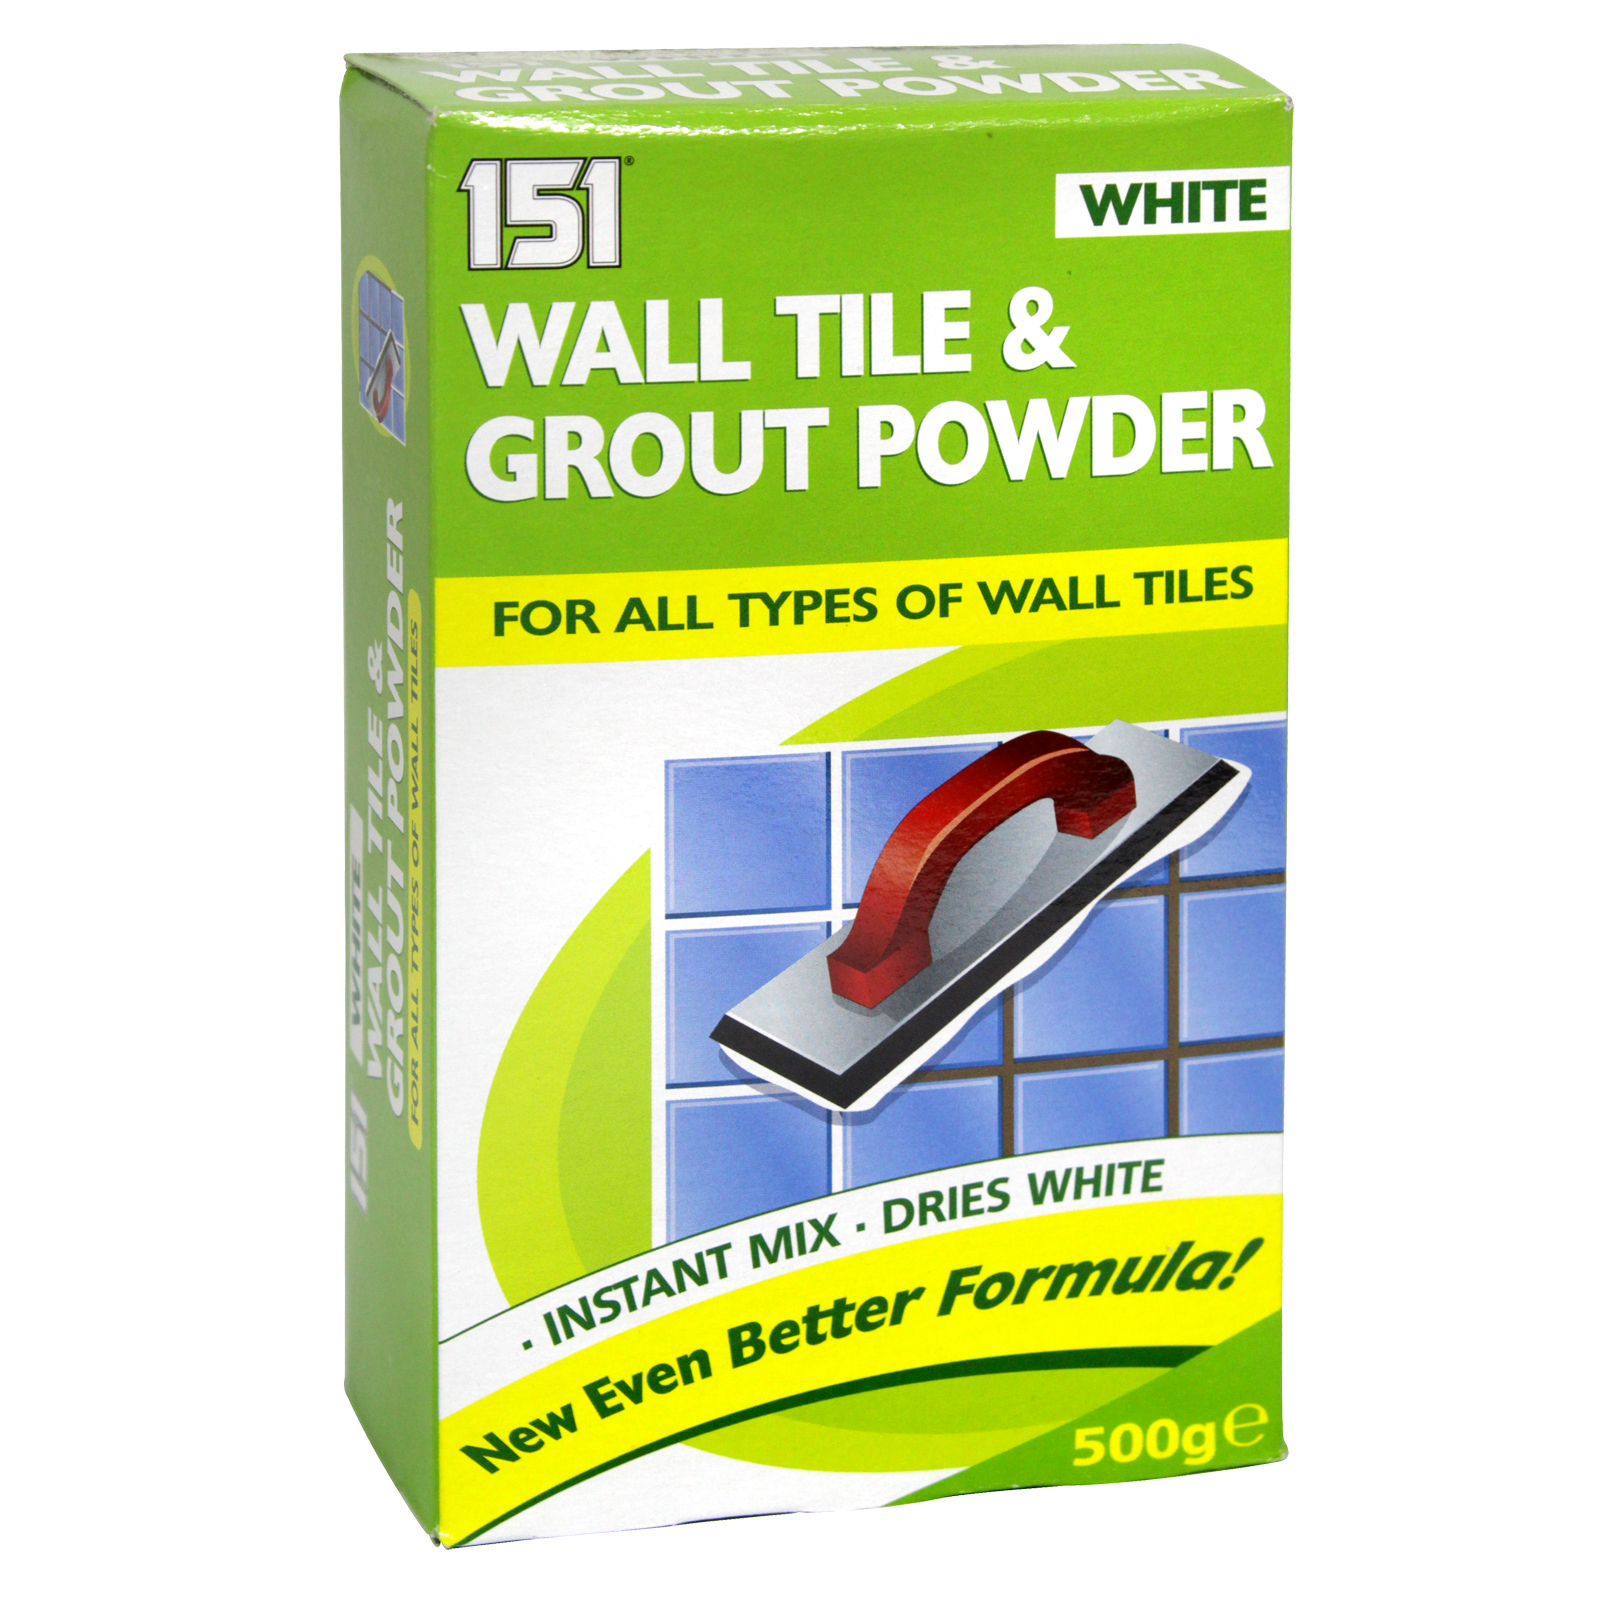 151 WALL TILE & GROUT POWDER WHITE 500G